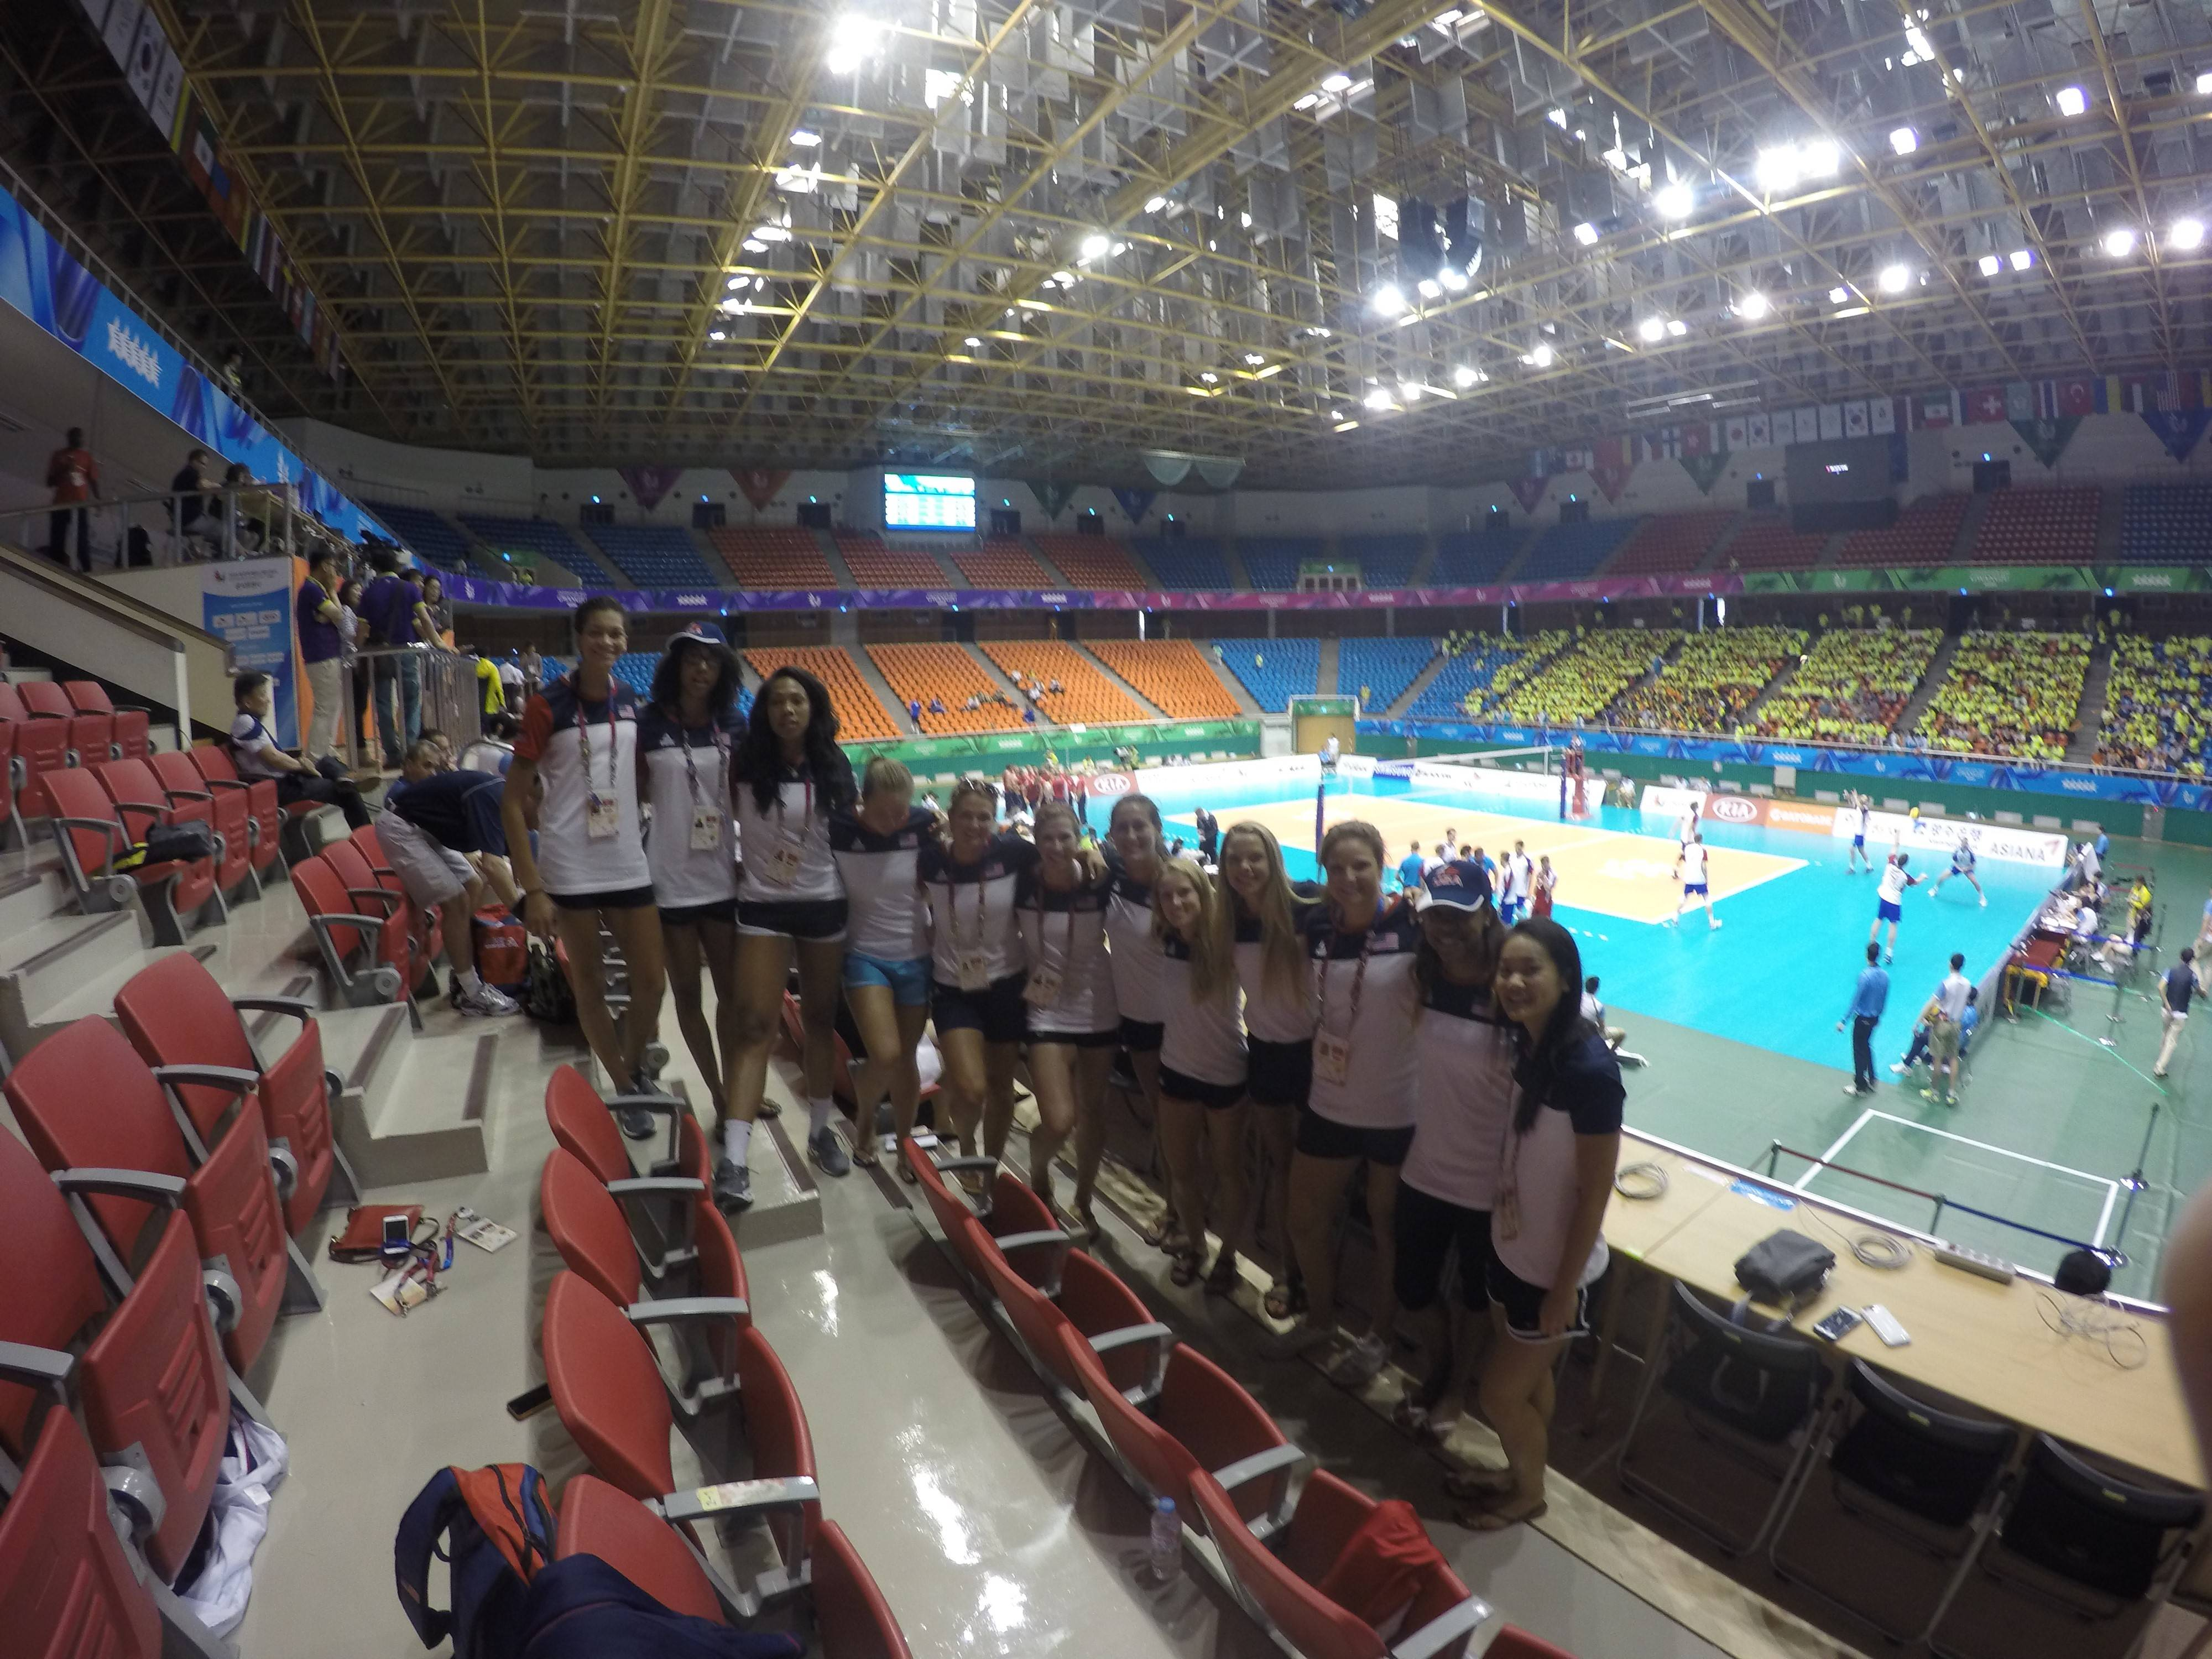 Team USA after cheering on the men's team.